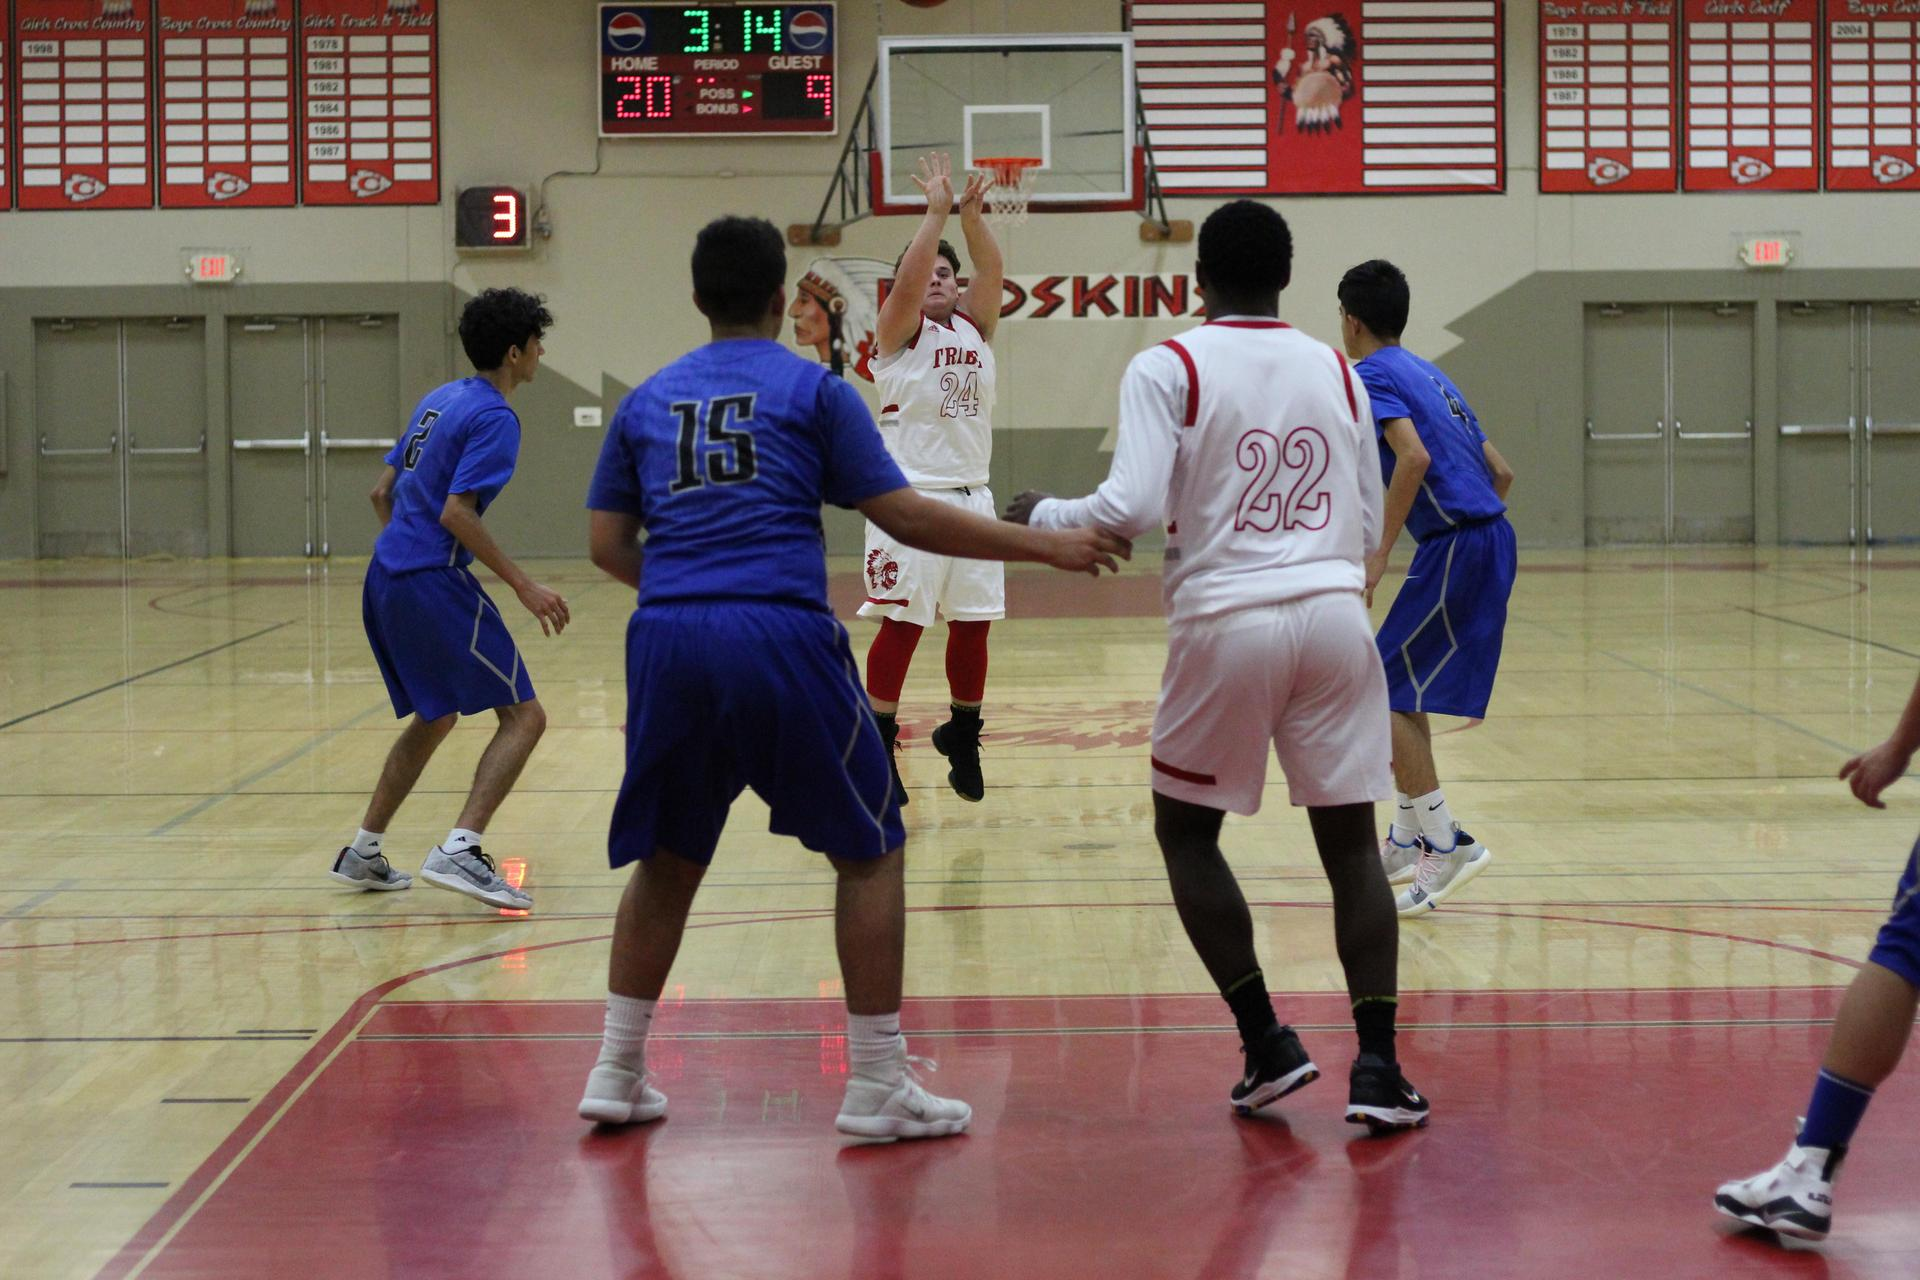 Varsity Boys playing basketball against Caruthers.